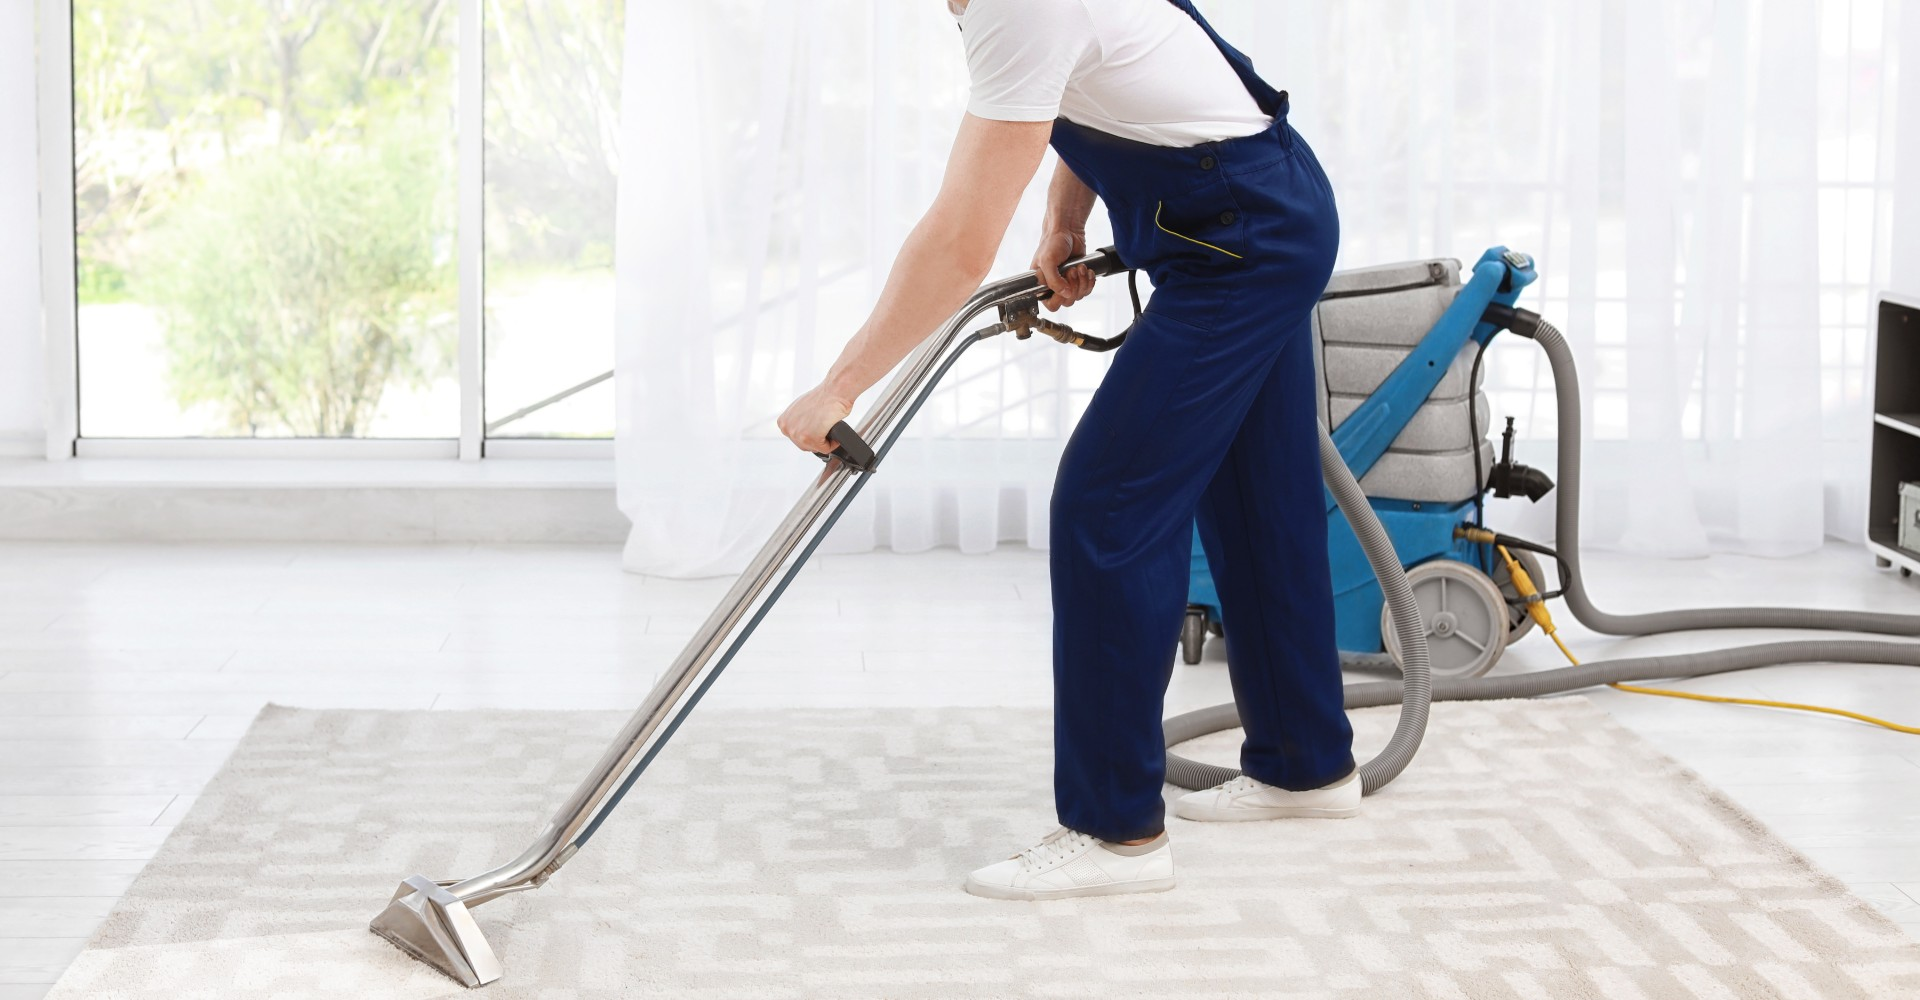 Carpet Cleaning Techniques Professional Cleaners Use